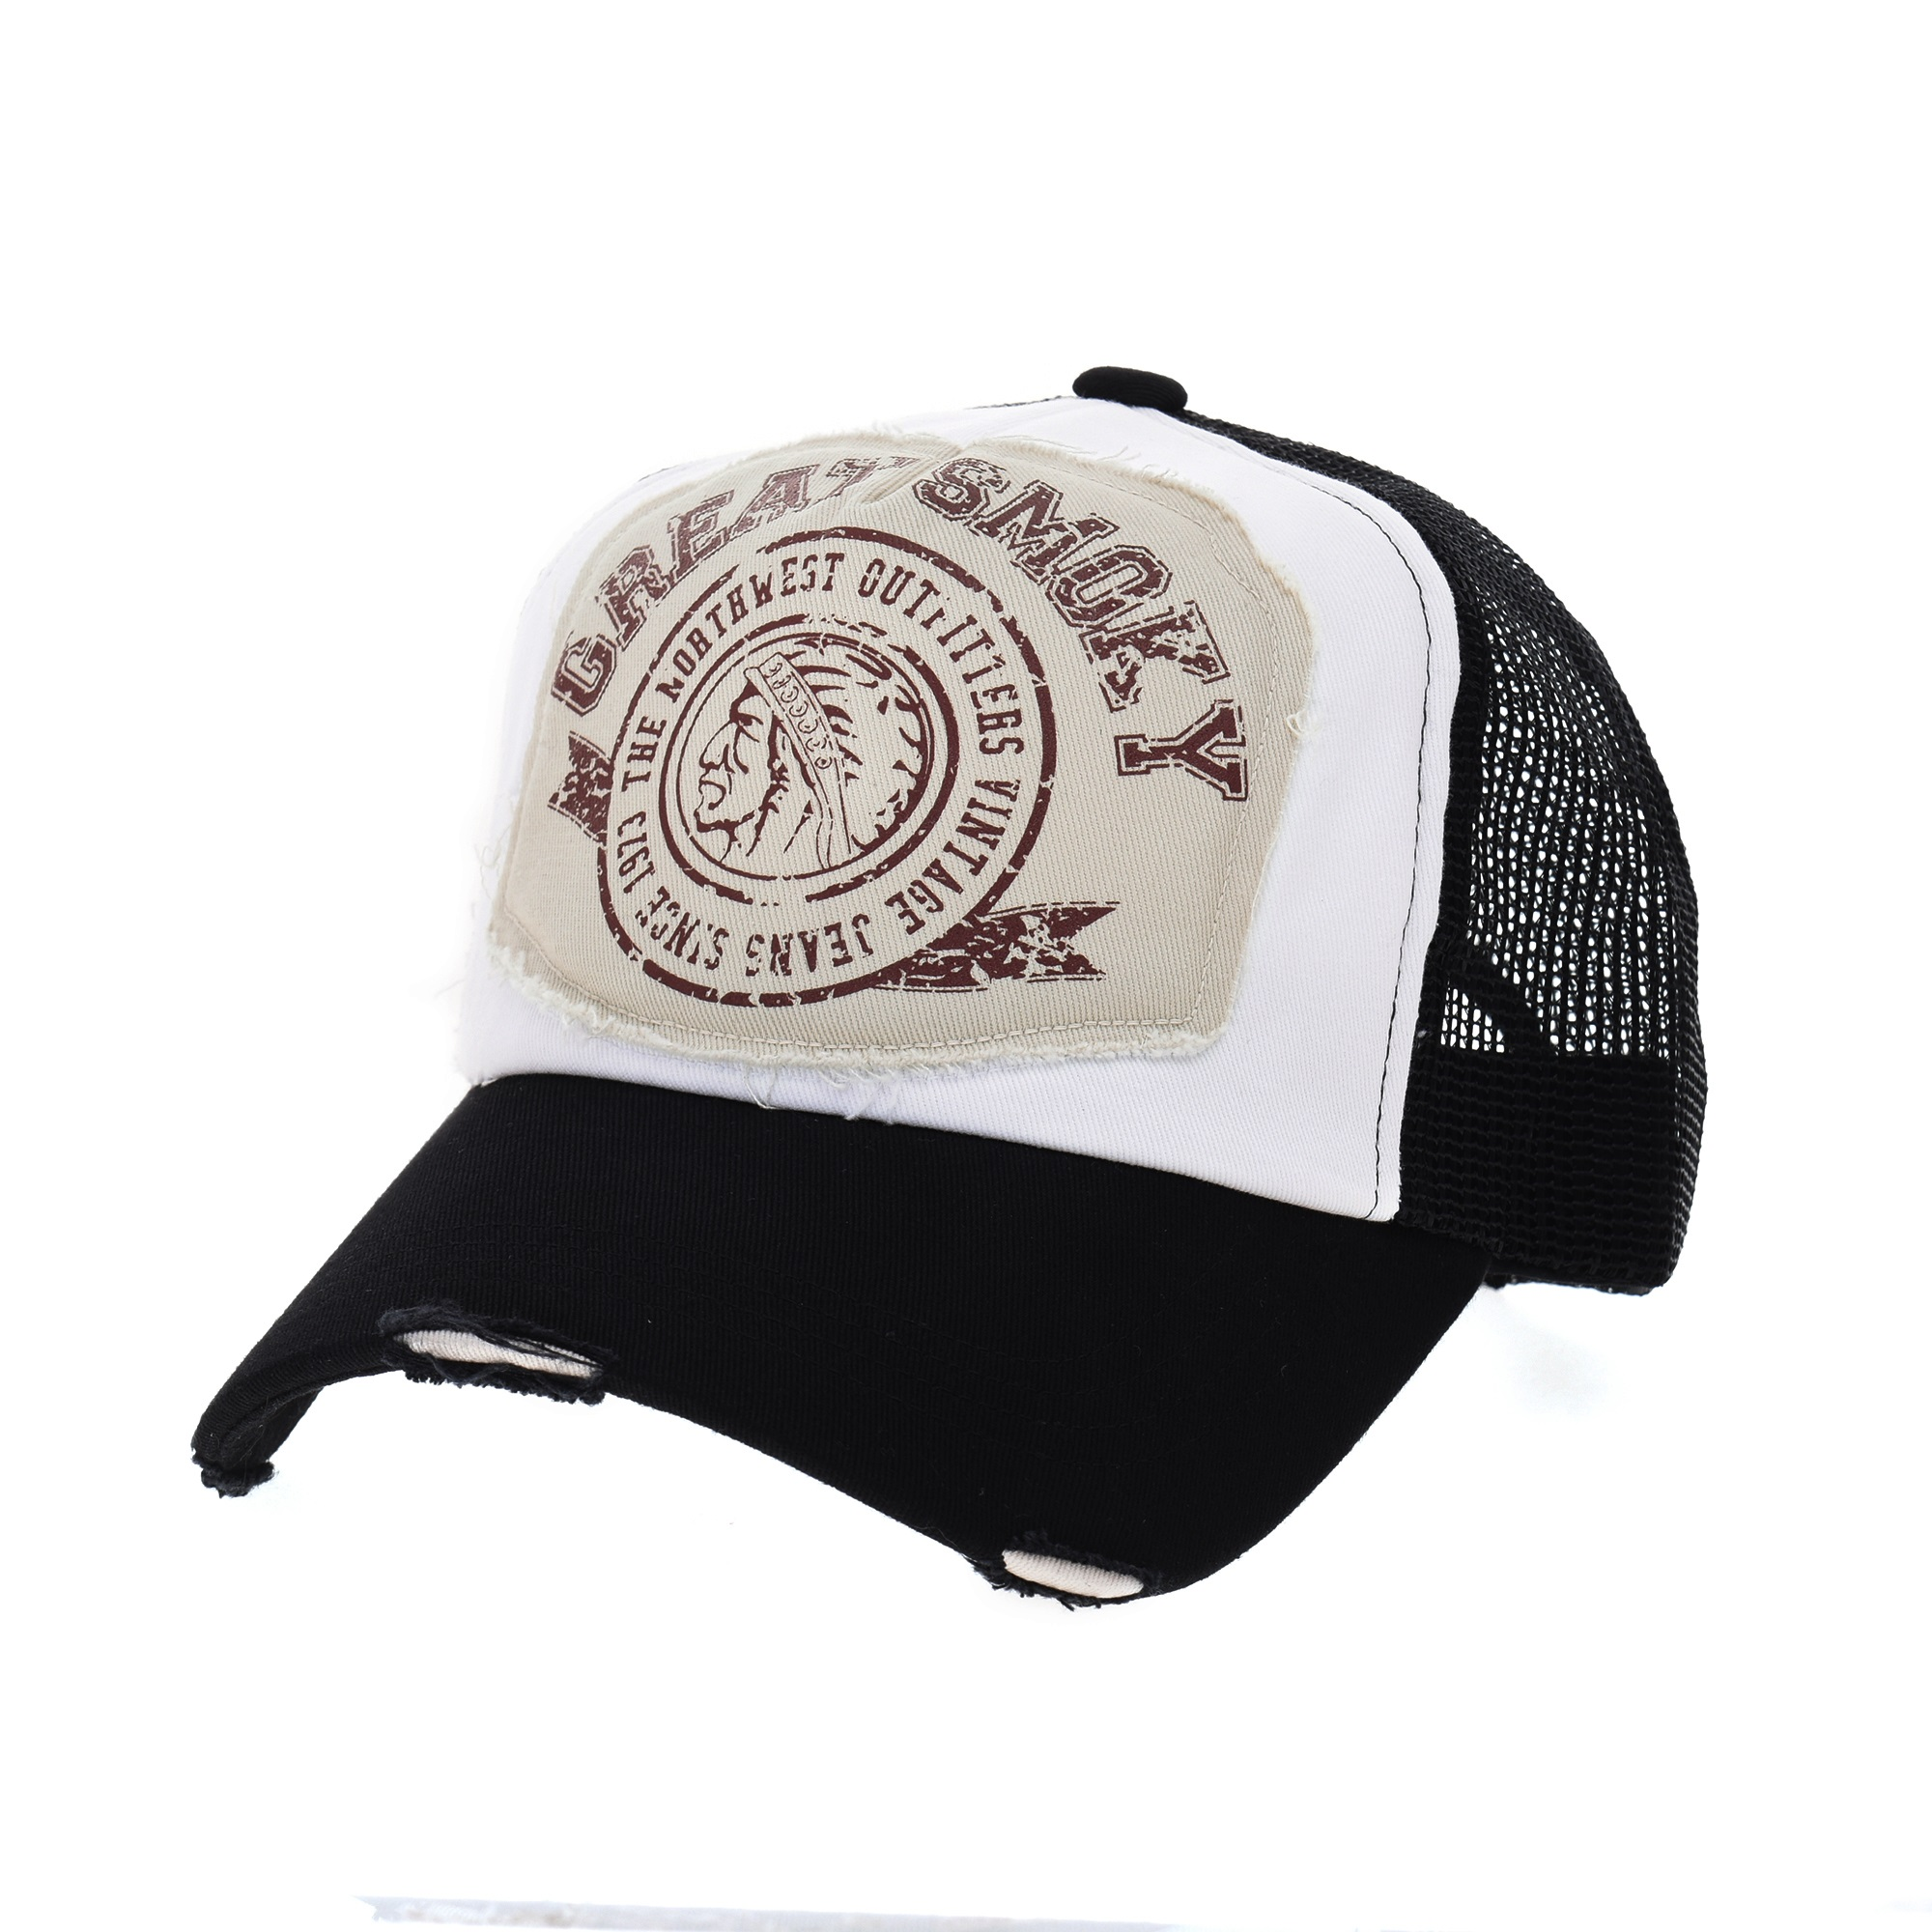 WITHMOONS Baseball Cap Mesh Distressed Cotton Trucker Cap KR1187